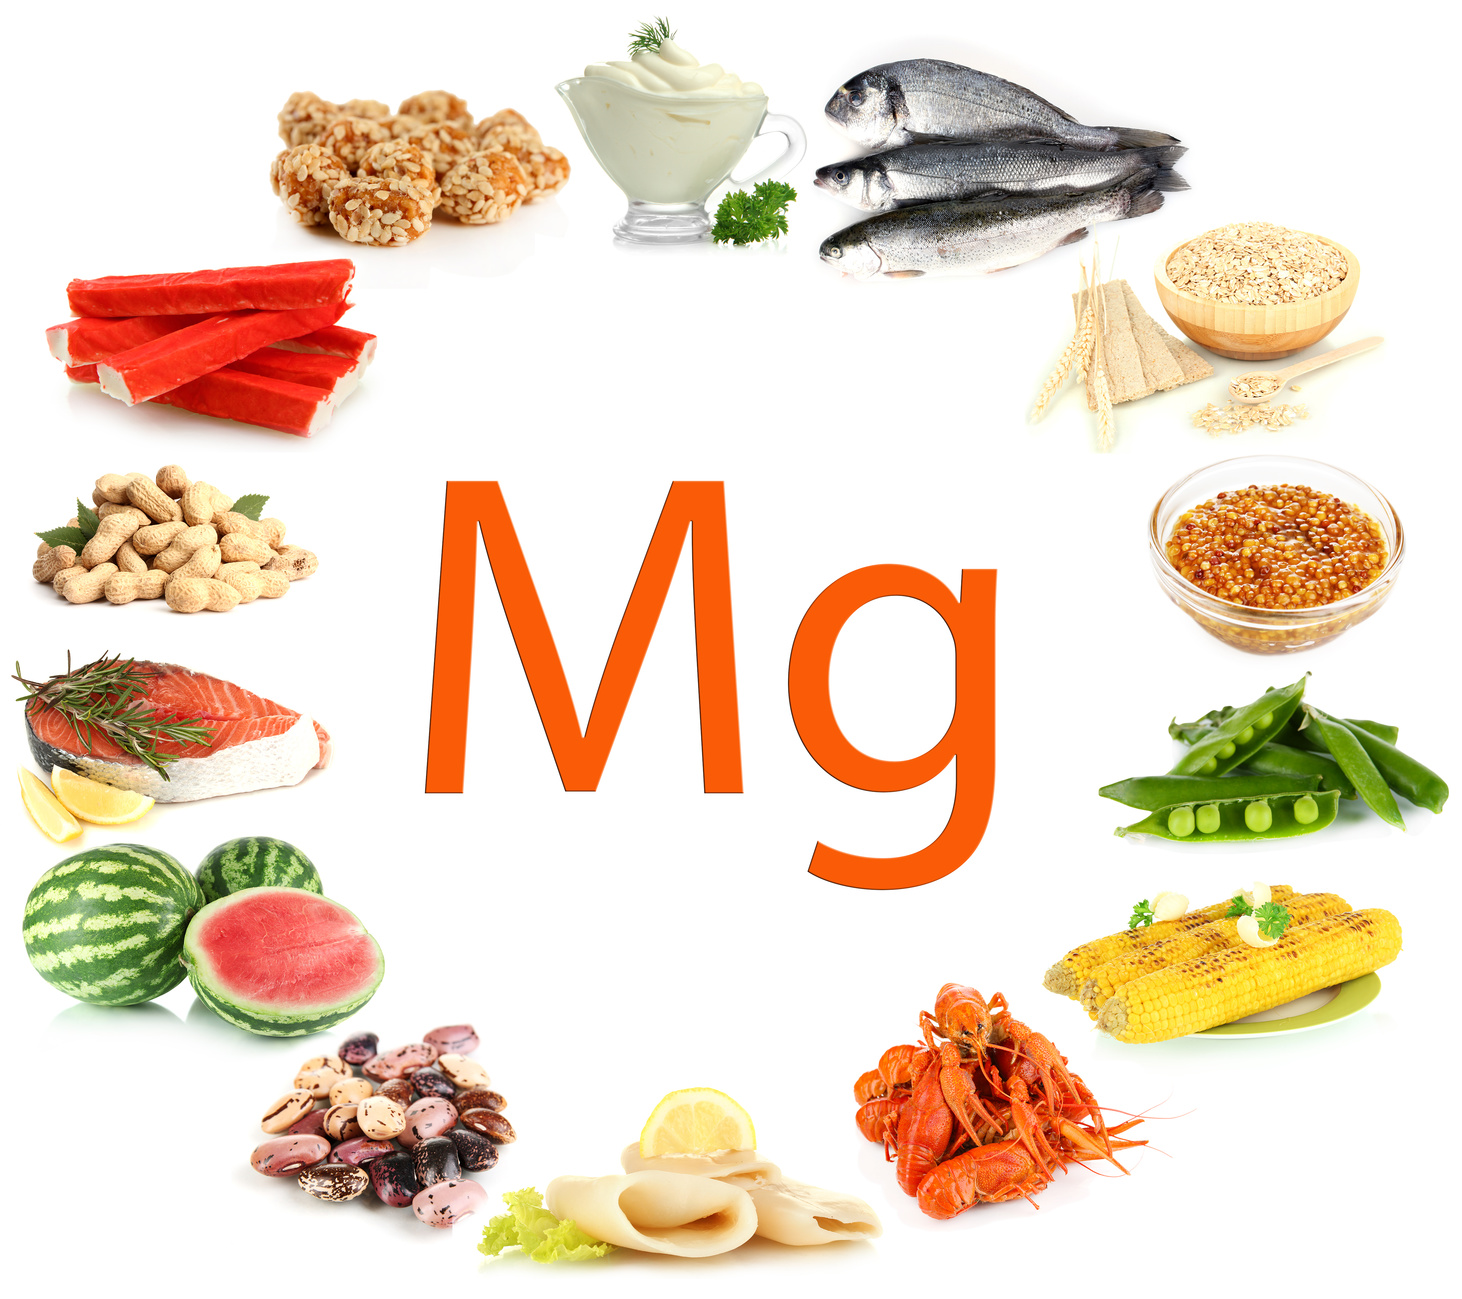 Mg is found in all these healthy food and Tyent alkaline water!